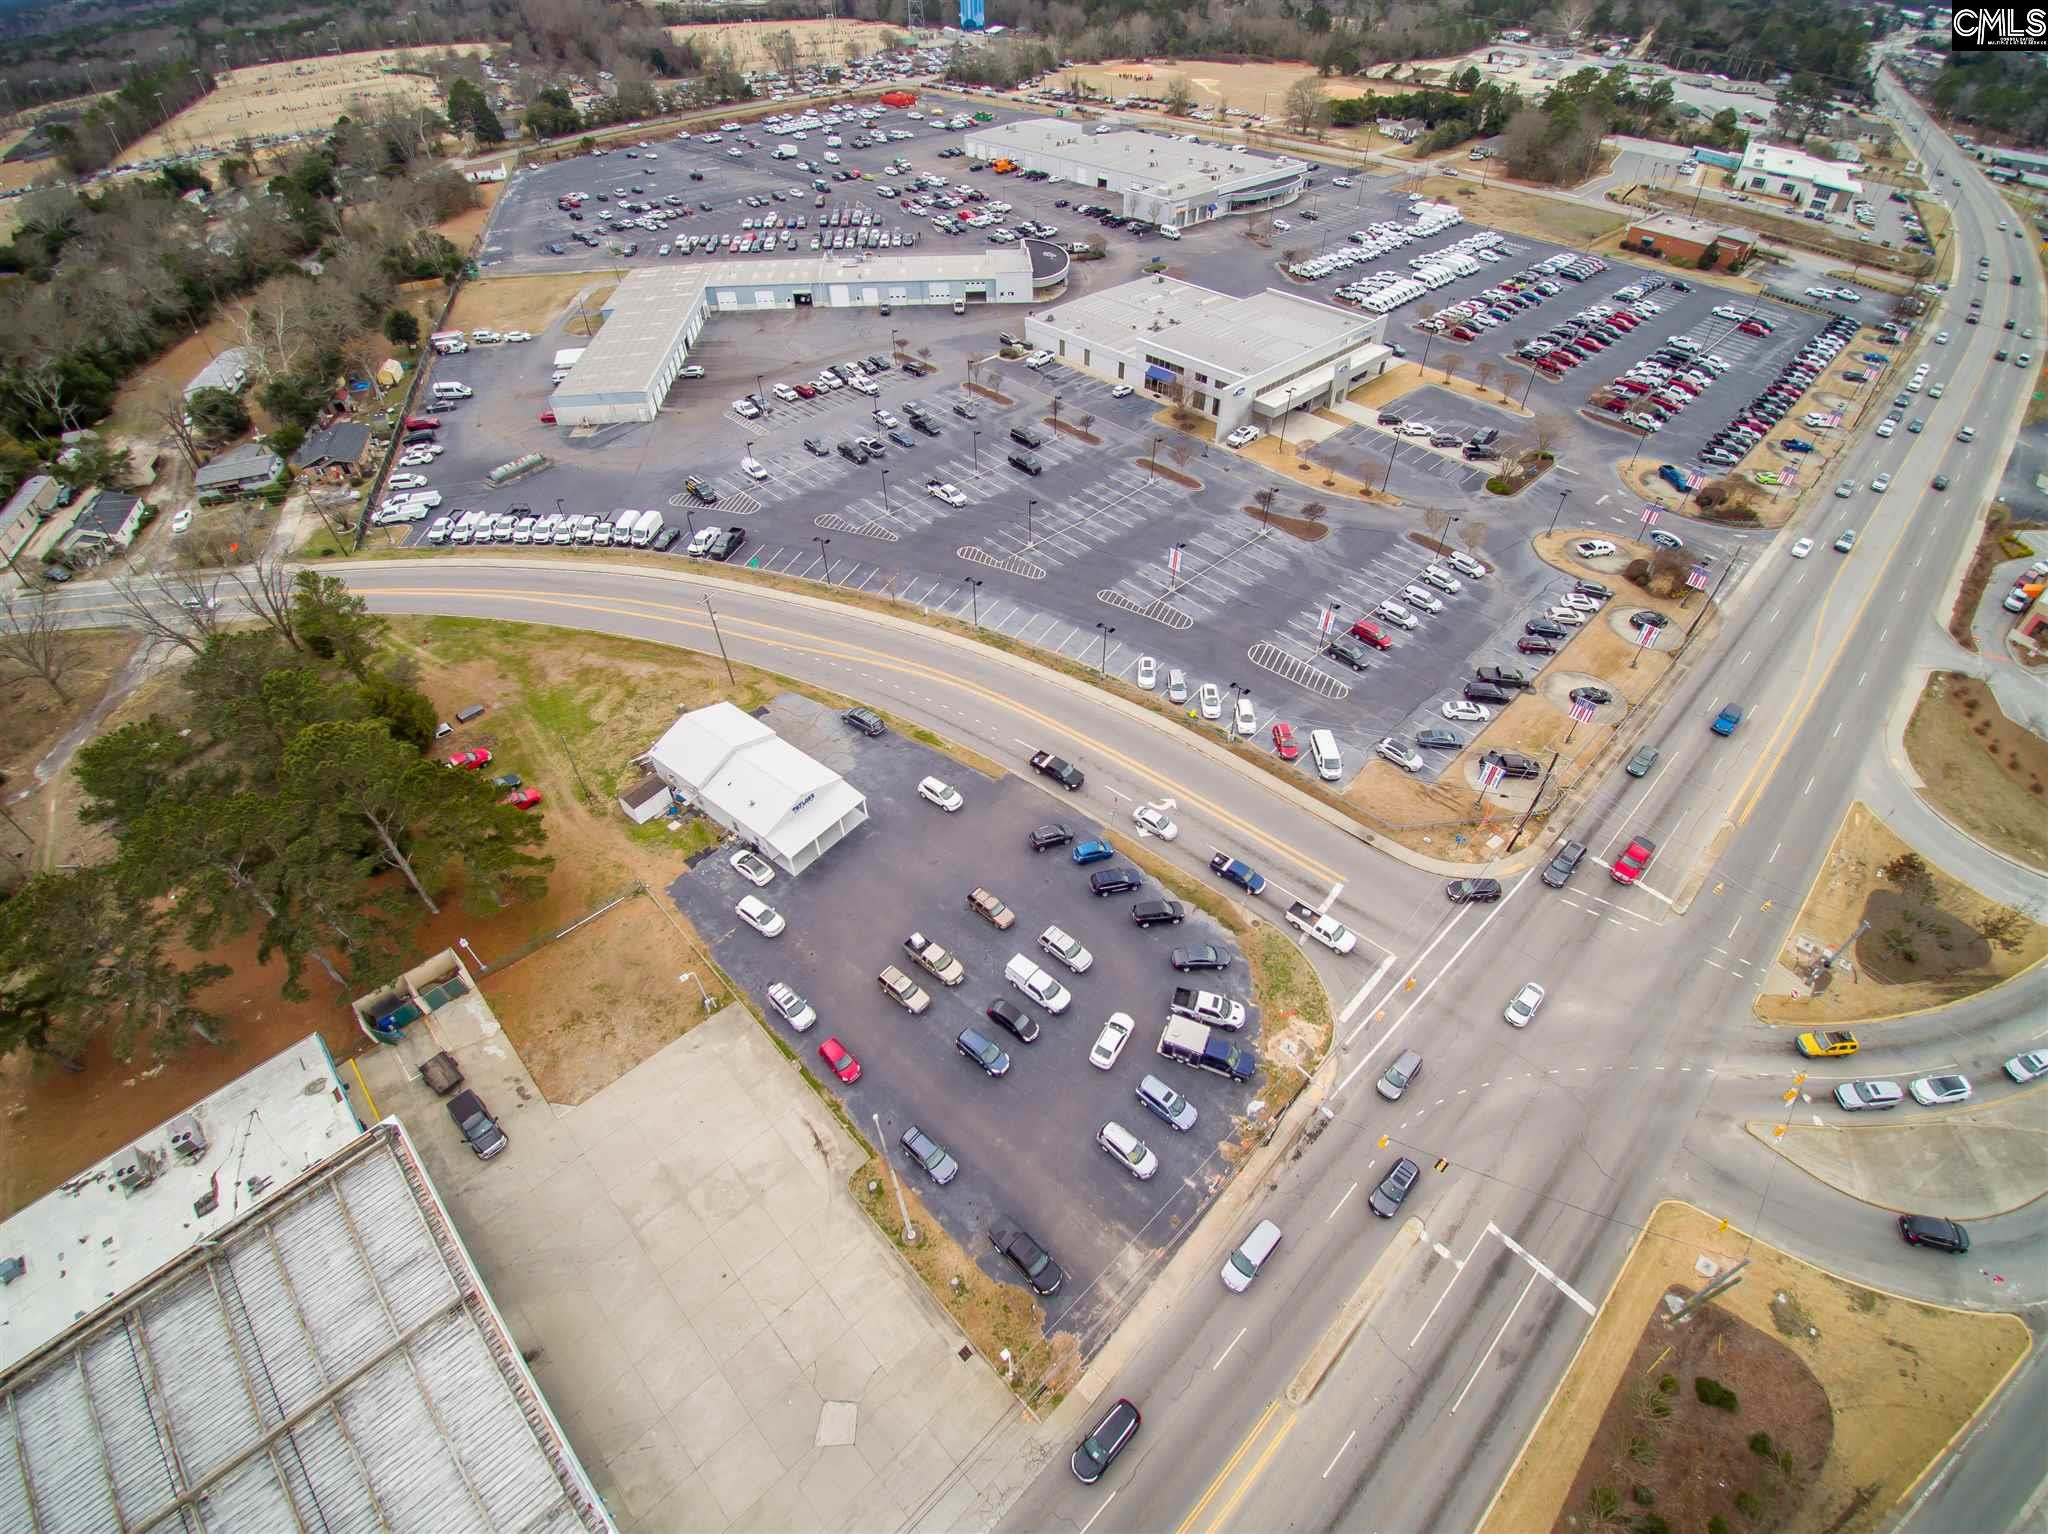 Commercial Property for Sale in Columbia SC